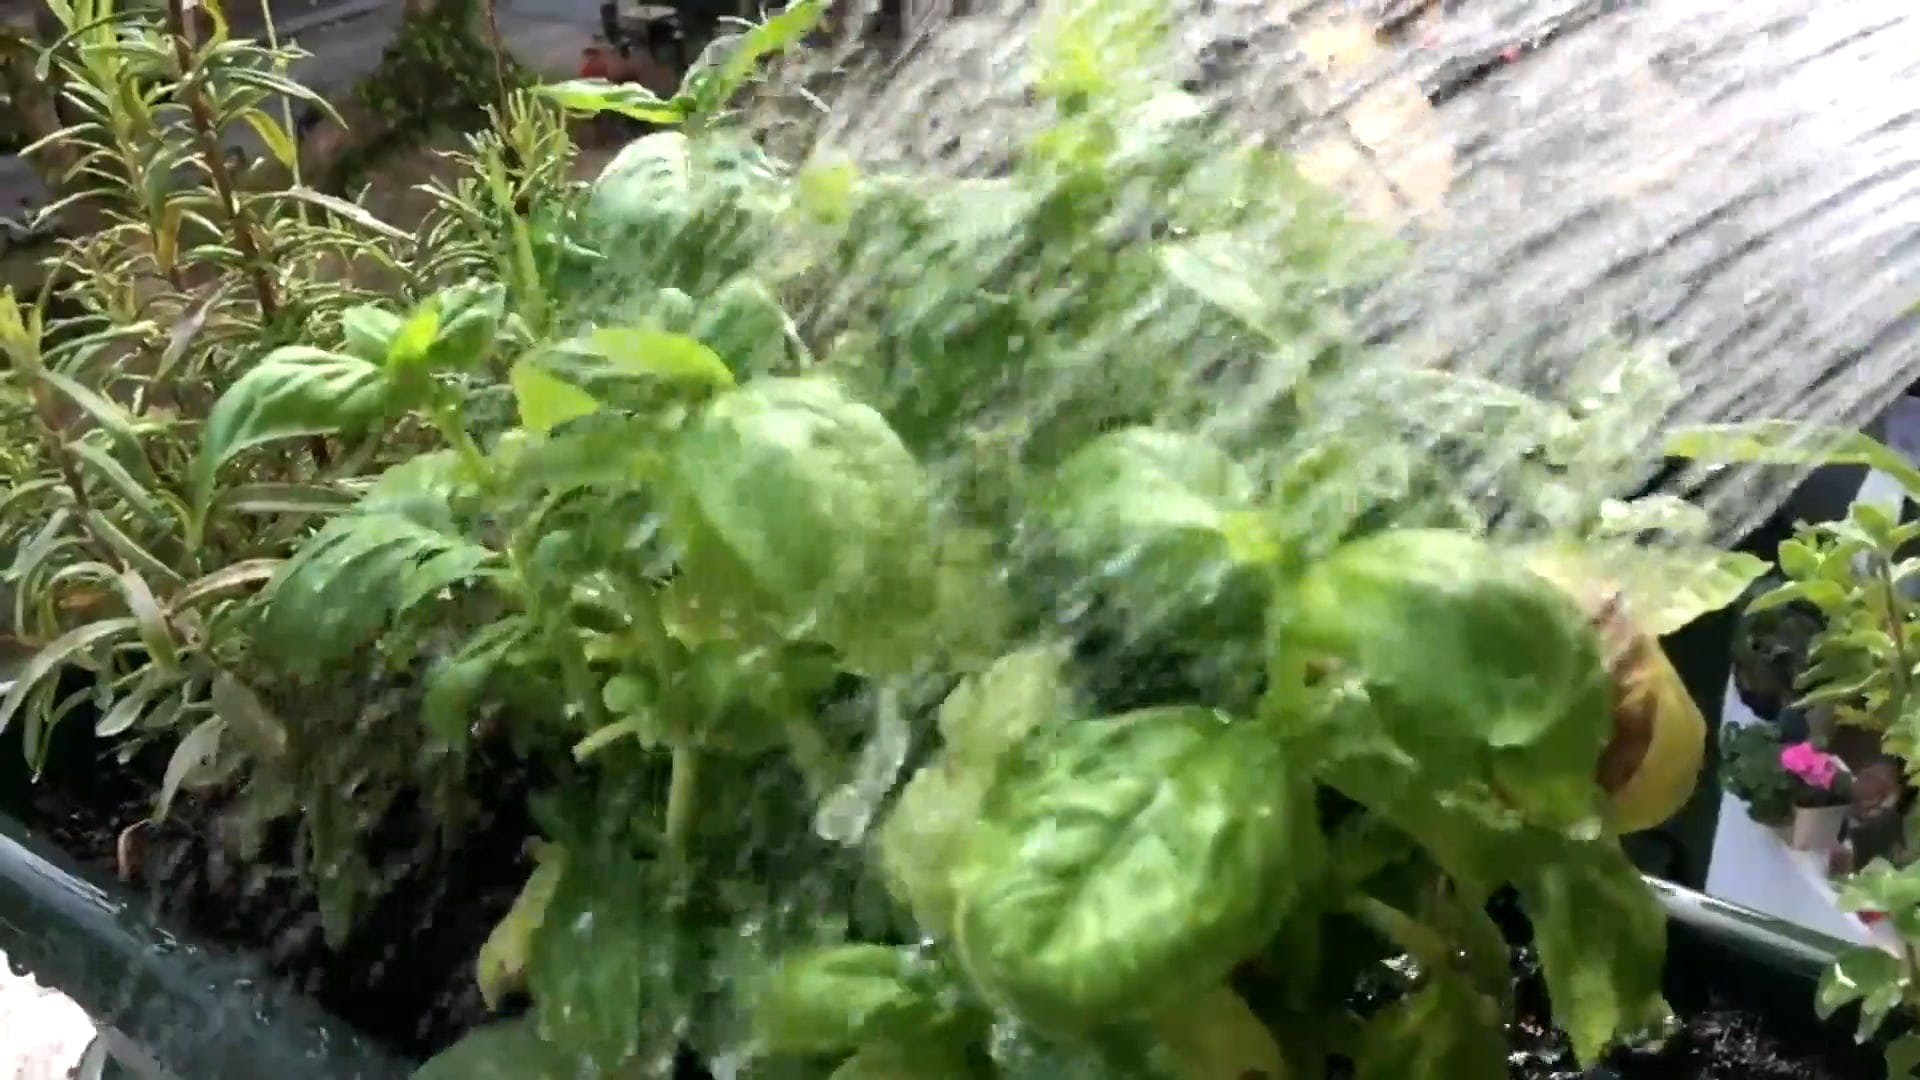 Watering Green Plants